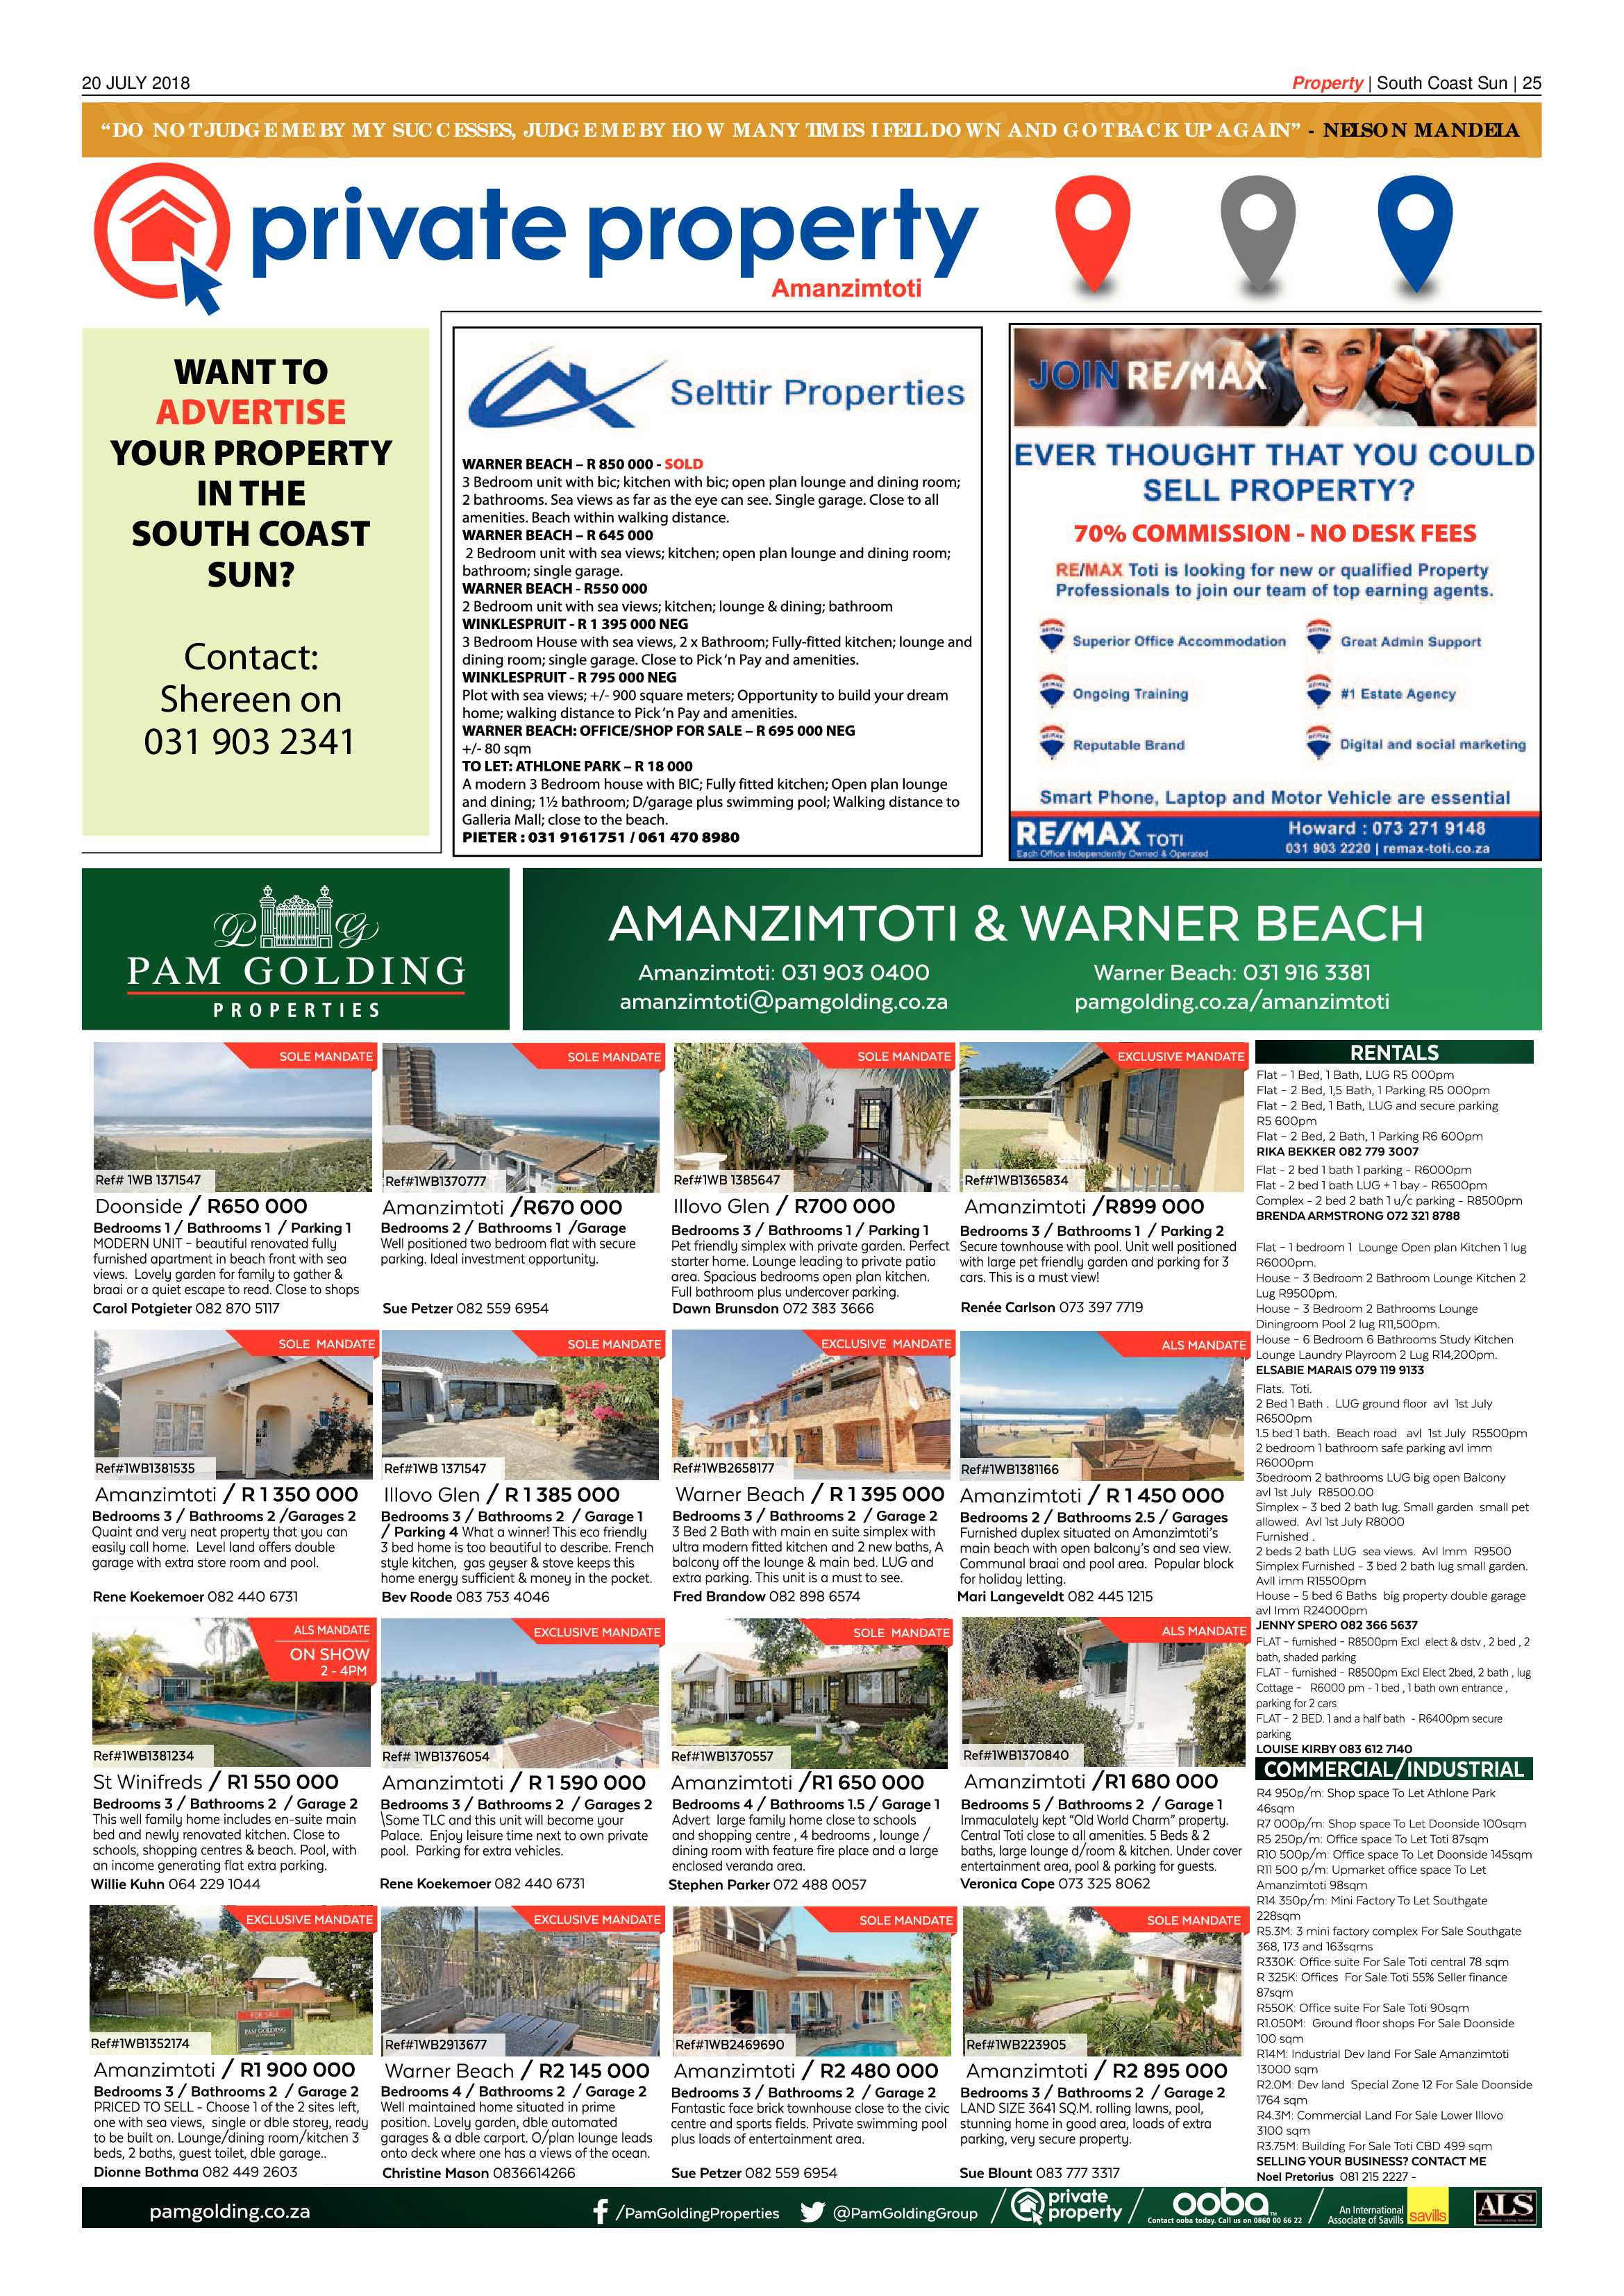 20-july-2018-epapers-page-25